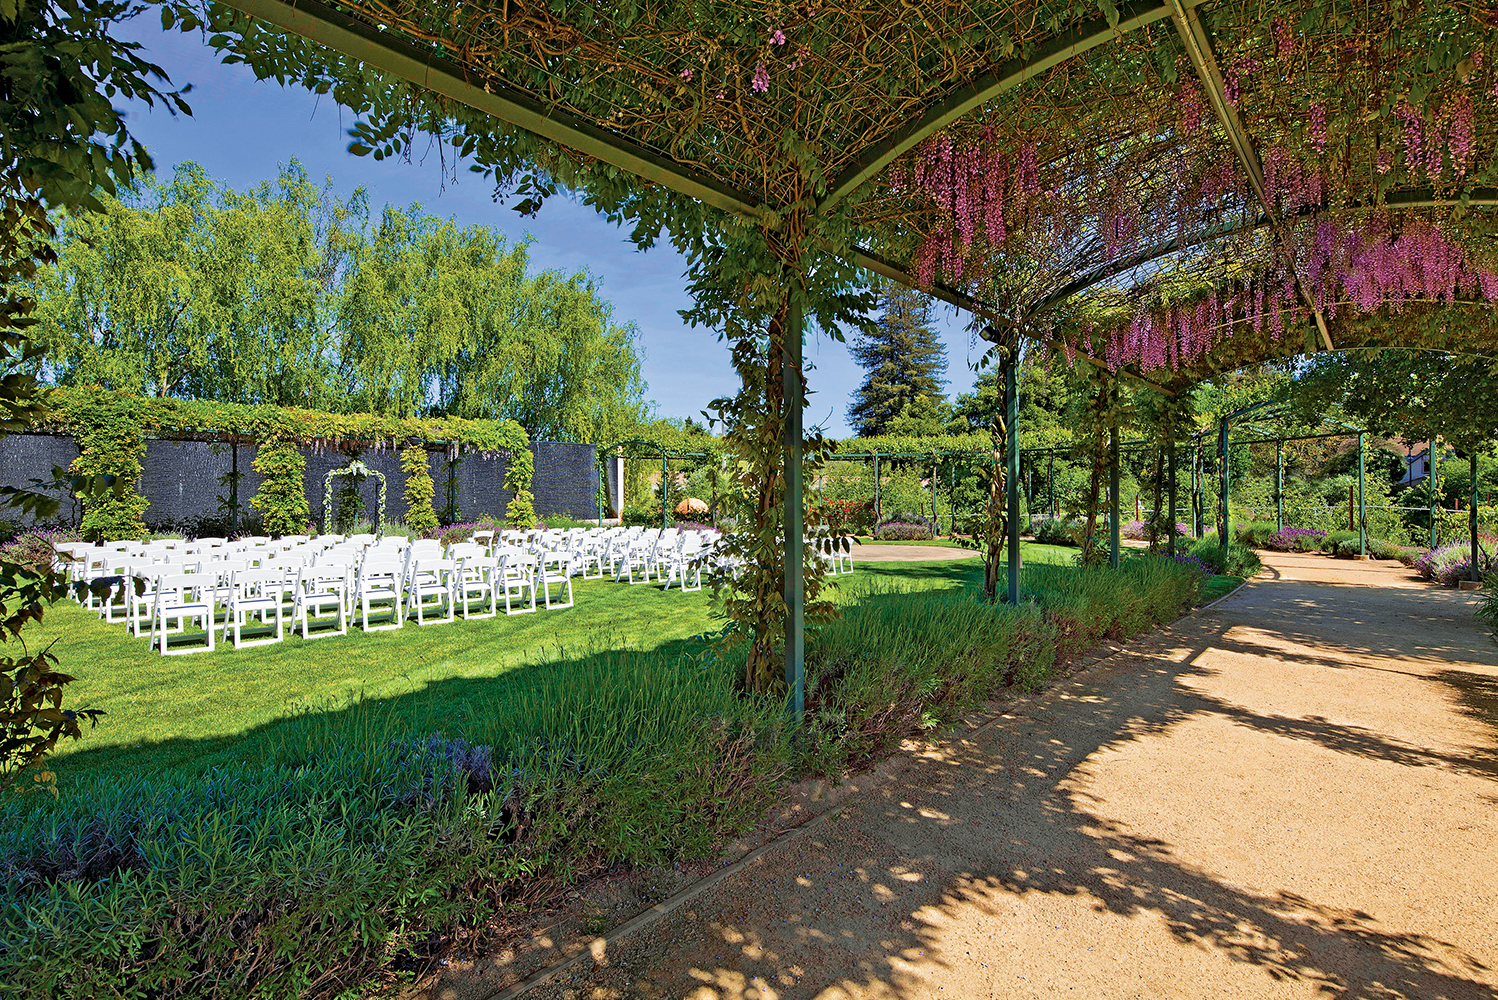 There is an 80-foot long water wall ideal for weddings and special events.